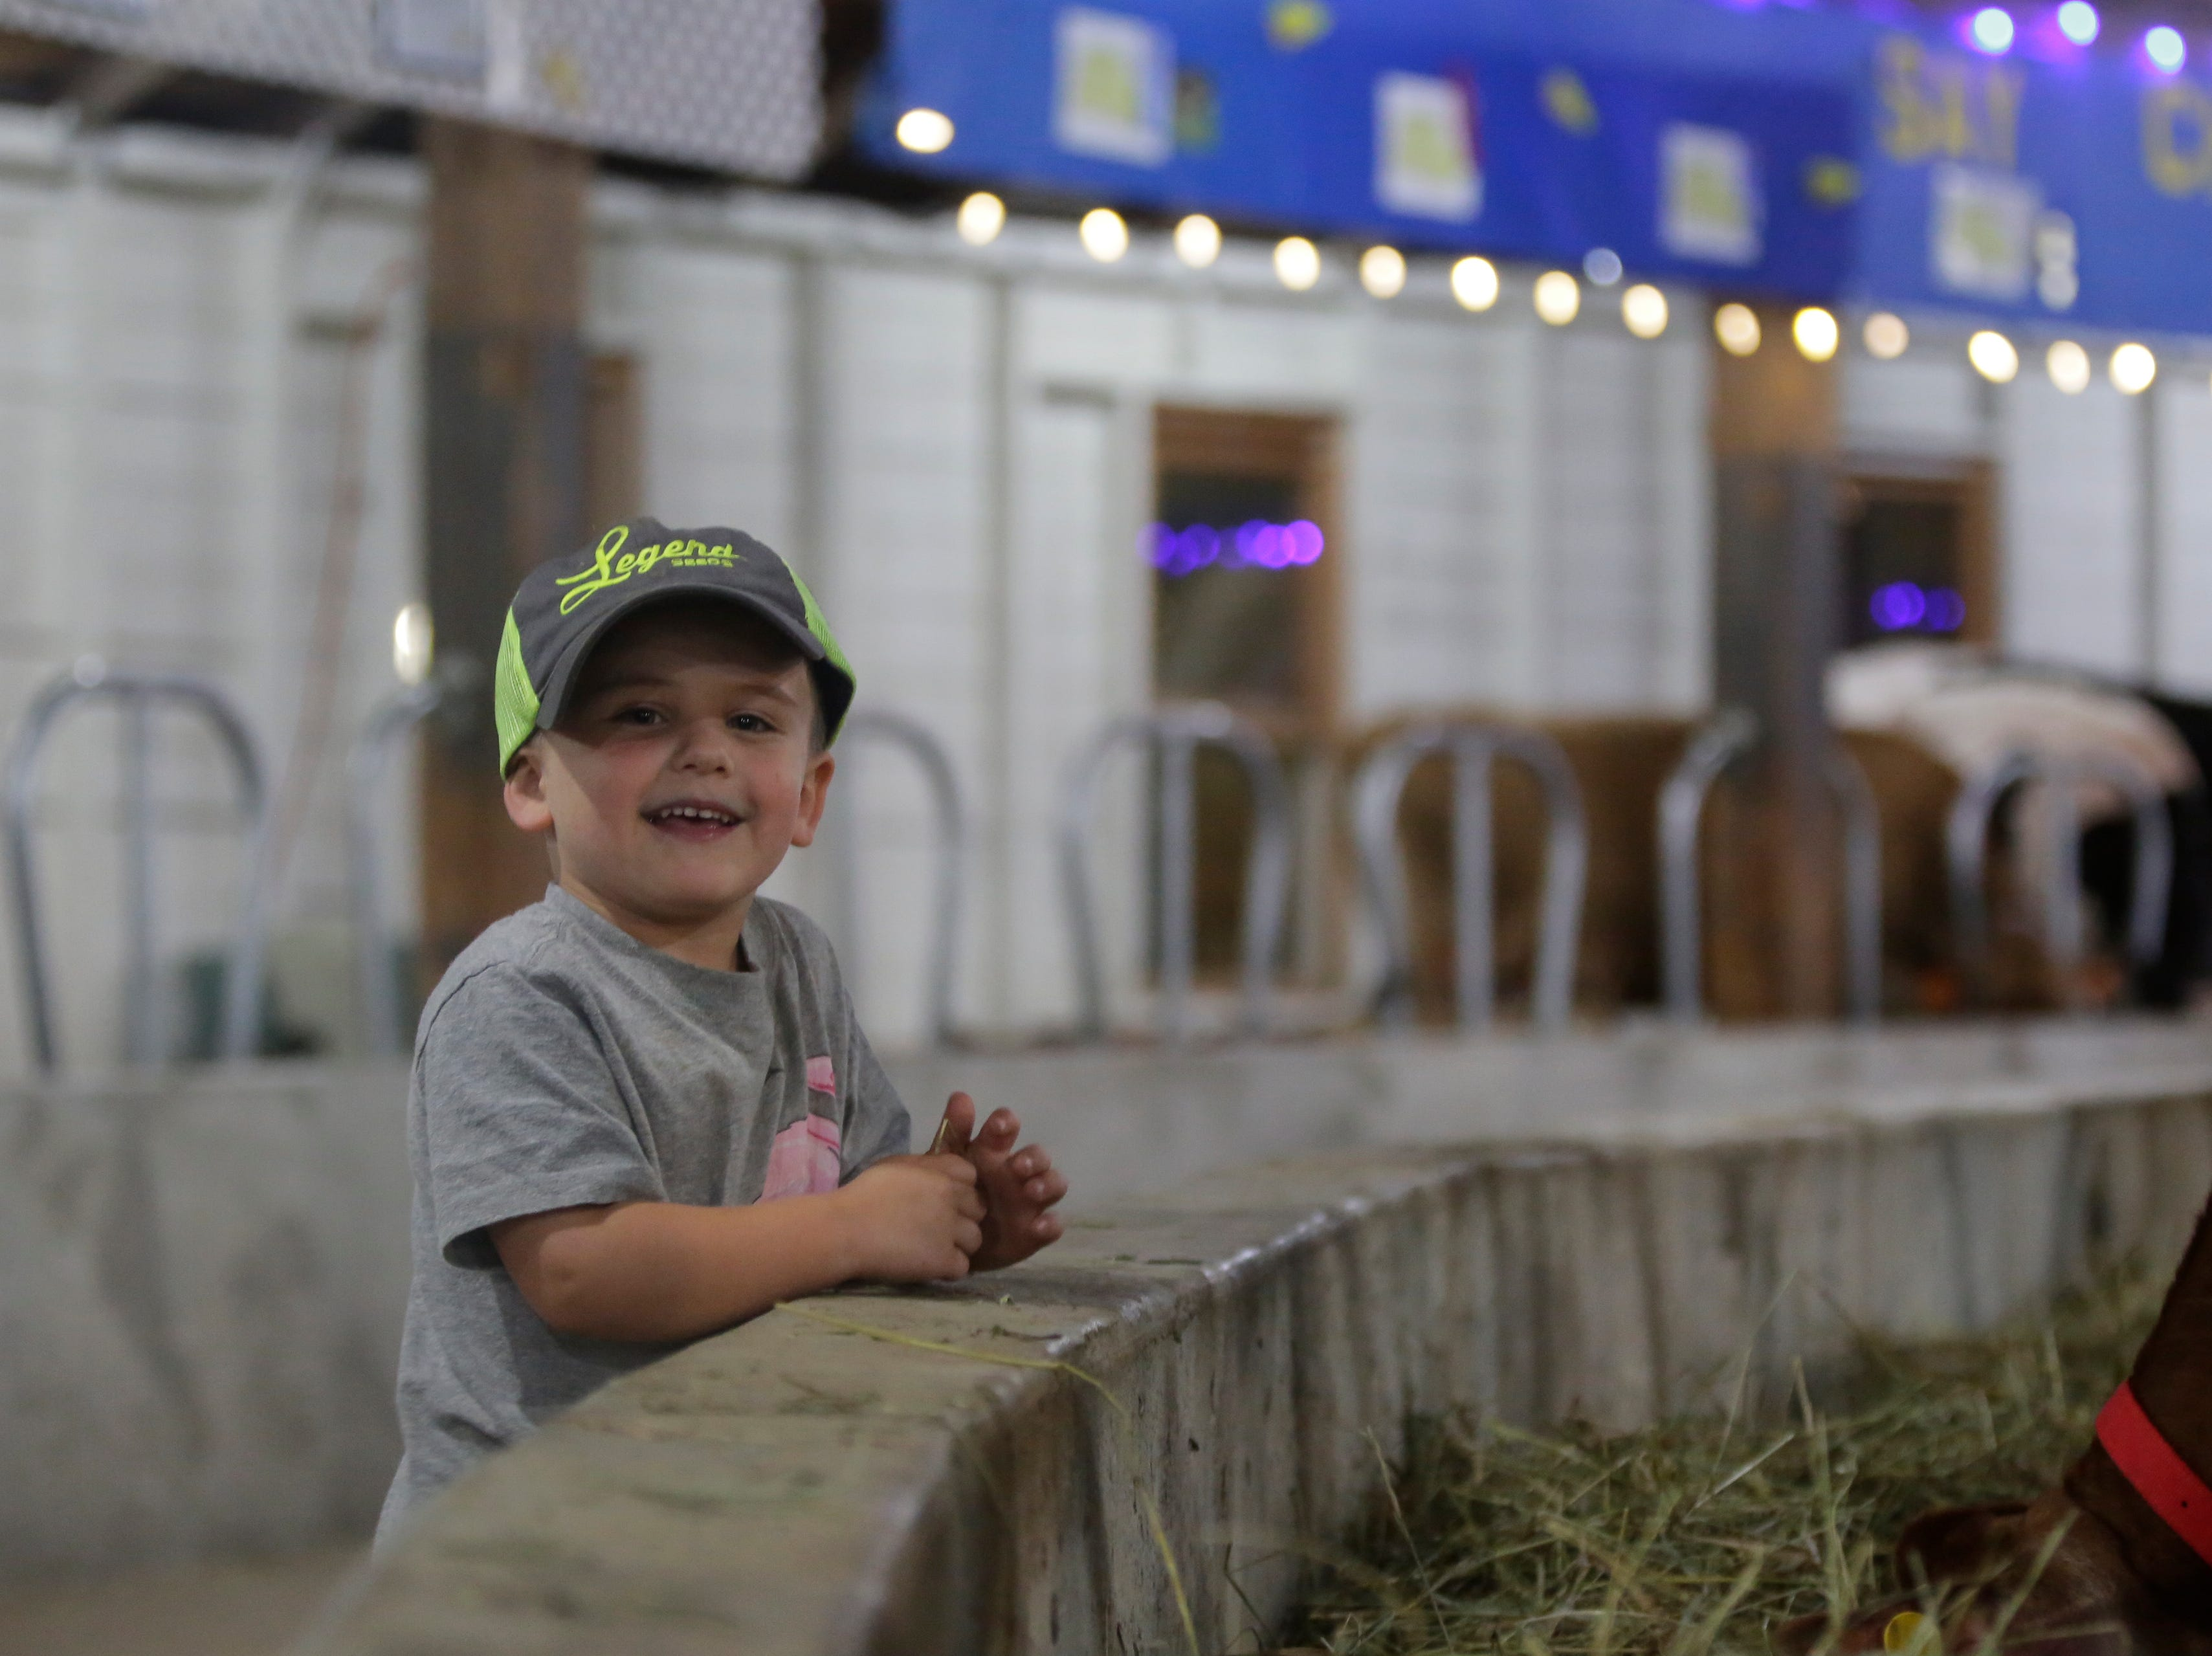 Ryker Breu, 4, smiles while visiting with some cows in the world's largest round barn at the Central Wisconsin State Fair in Marshfield Wednesday, August 22, 2018.